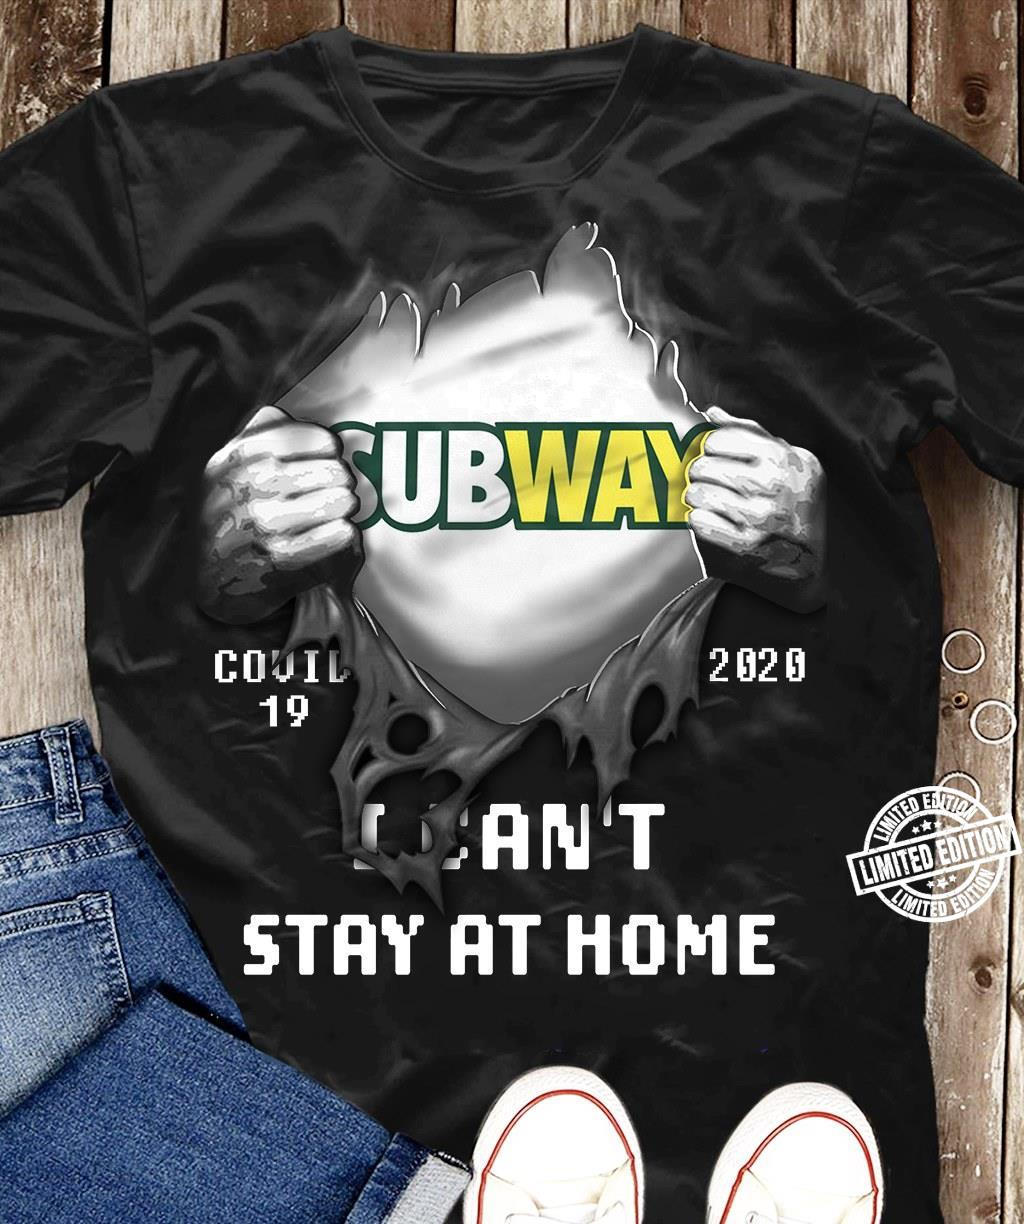 Subway covid 19 2020 t can't stay at home shirt